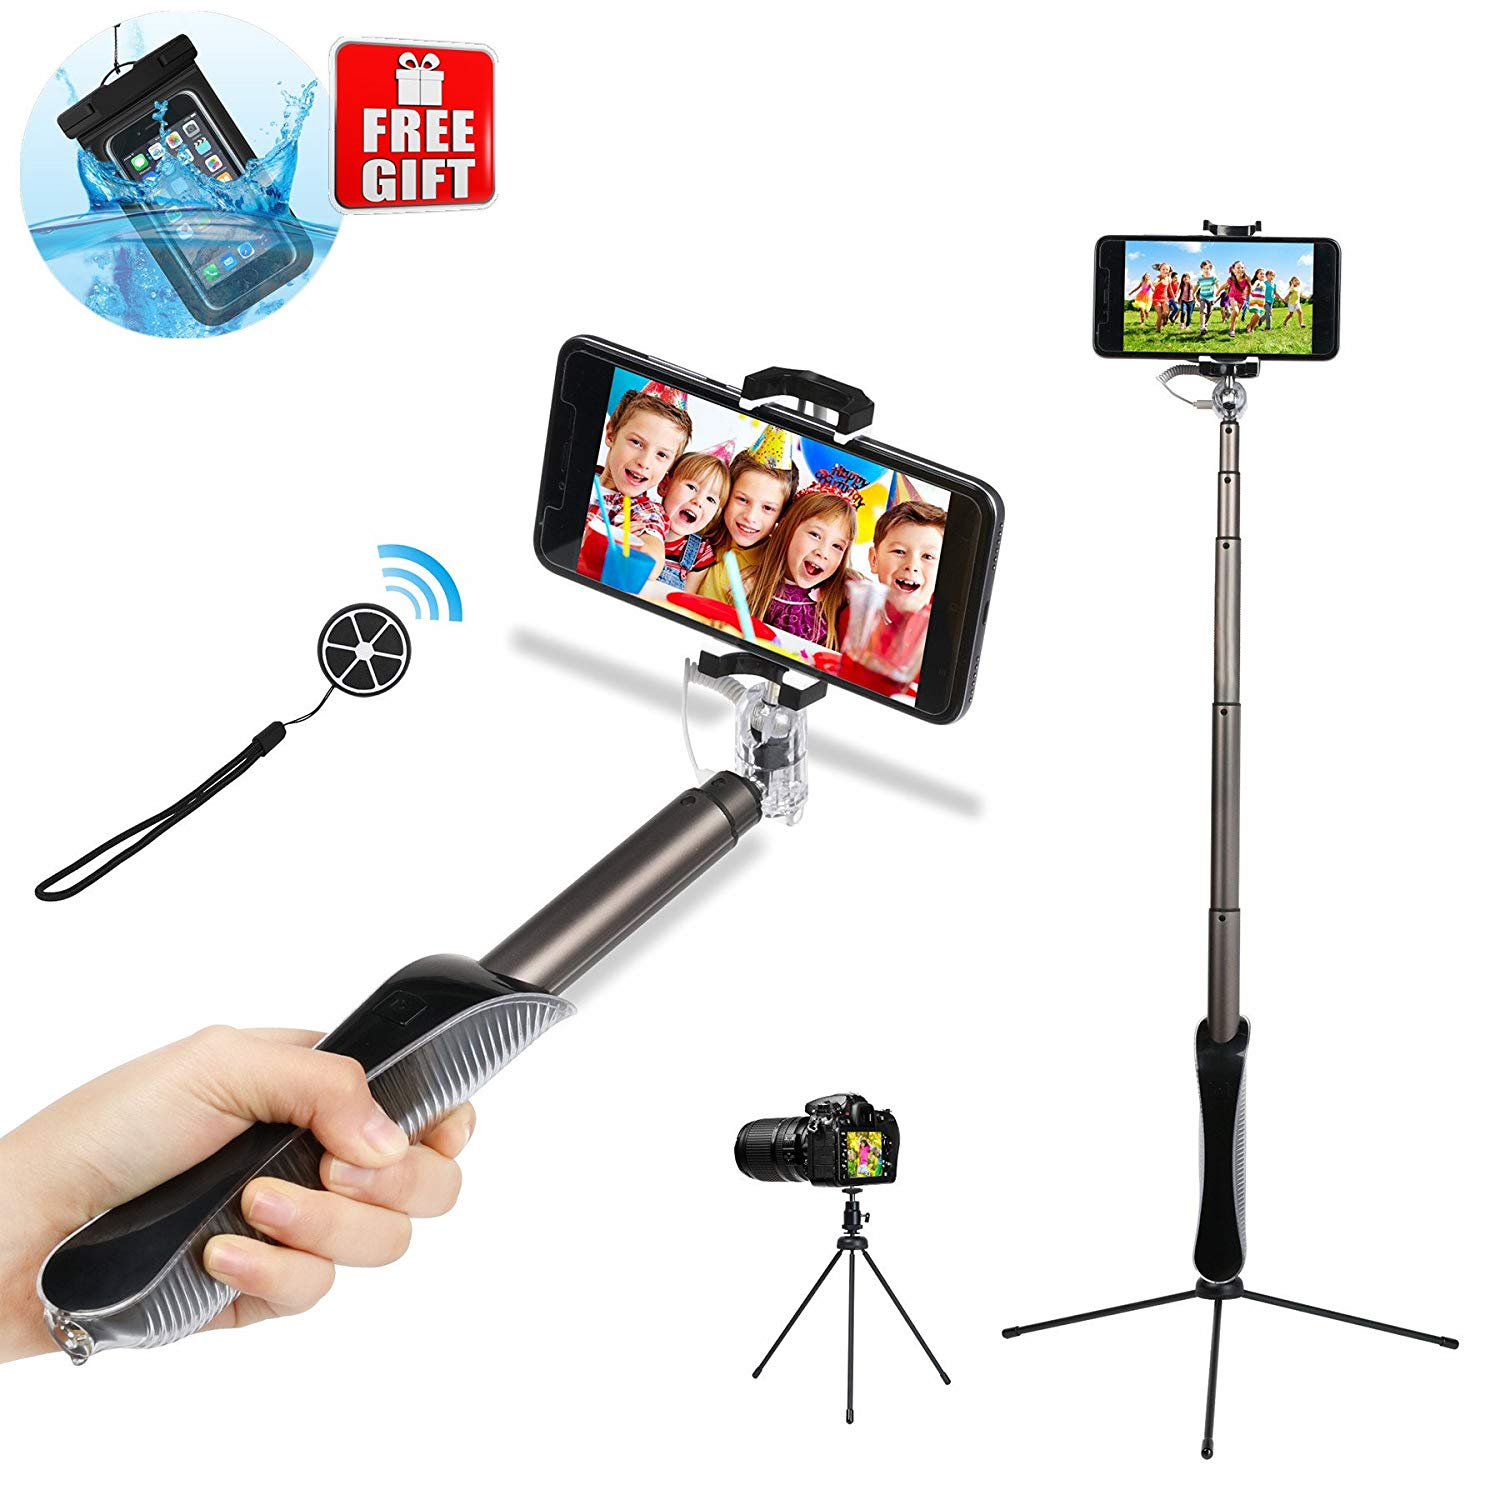 Wireless Bluetooth Selfie Stick Tripod Stand with Remote Control, Extendable Selfie Stick for iPhone 6 7 8 X Plus Samsung Android Phone, Rotational Phone Holder and Mirror (Free Waterproof Bag)